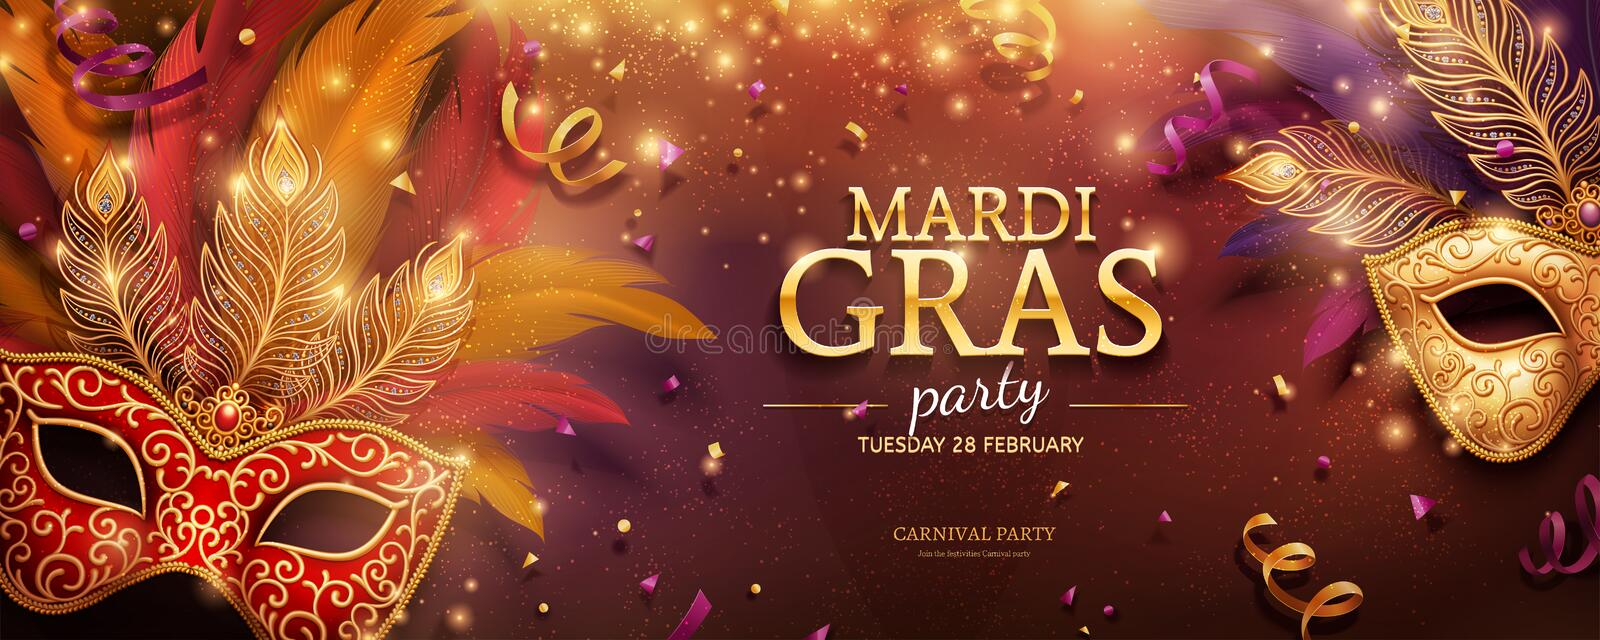 Mardi Gras party banner stock illustration